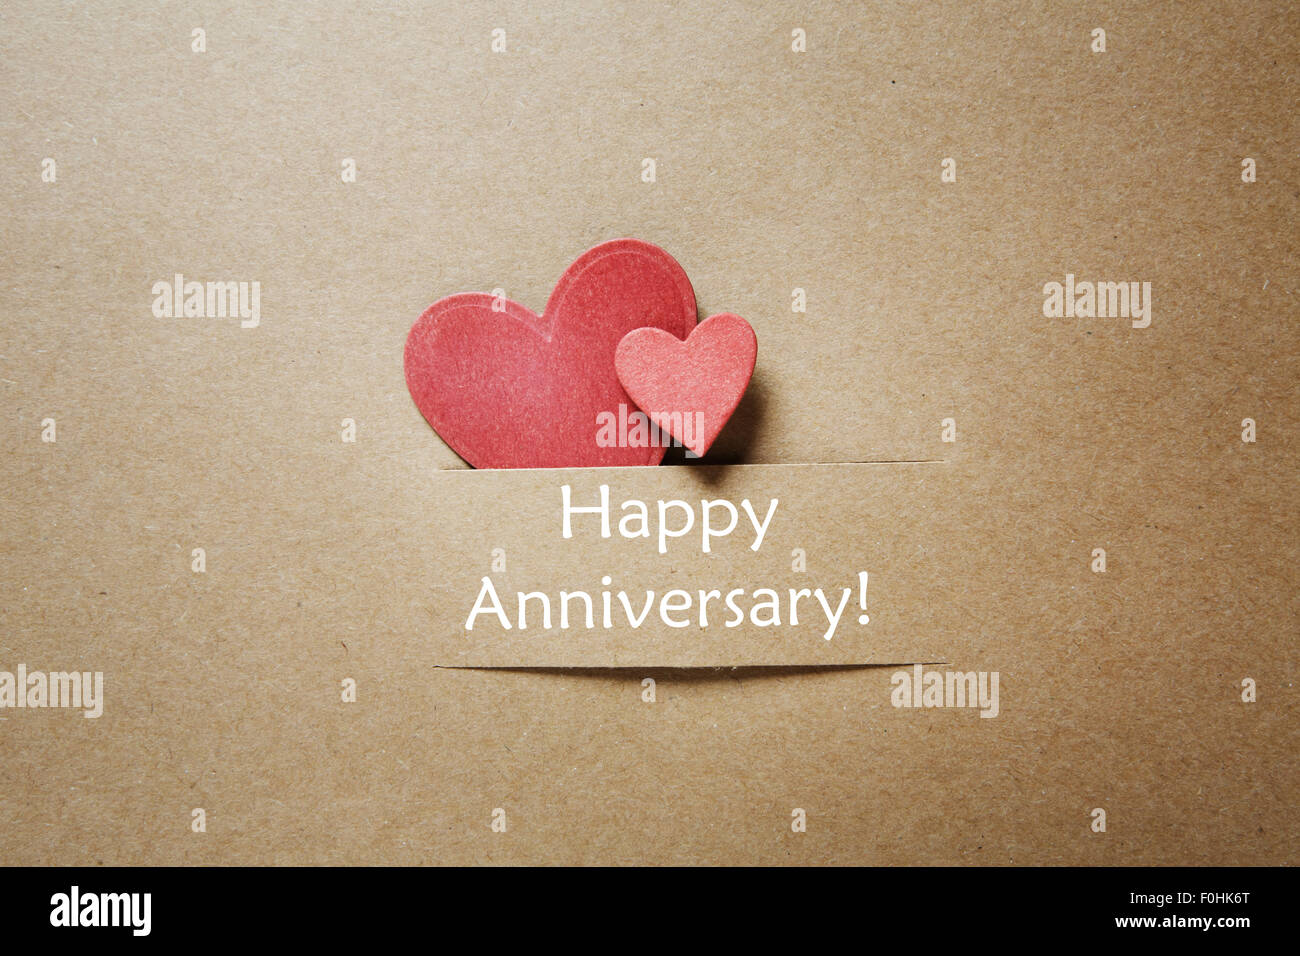 happy anniversary message with handmade red small hearts stock photo